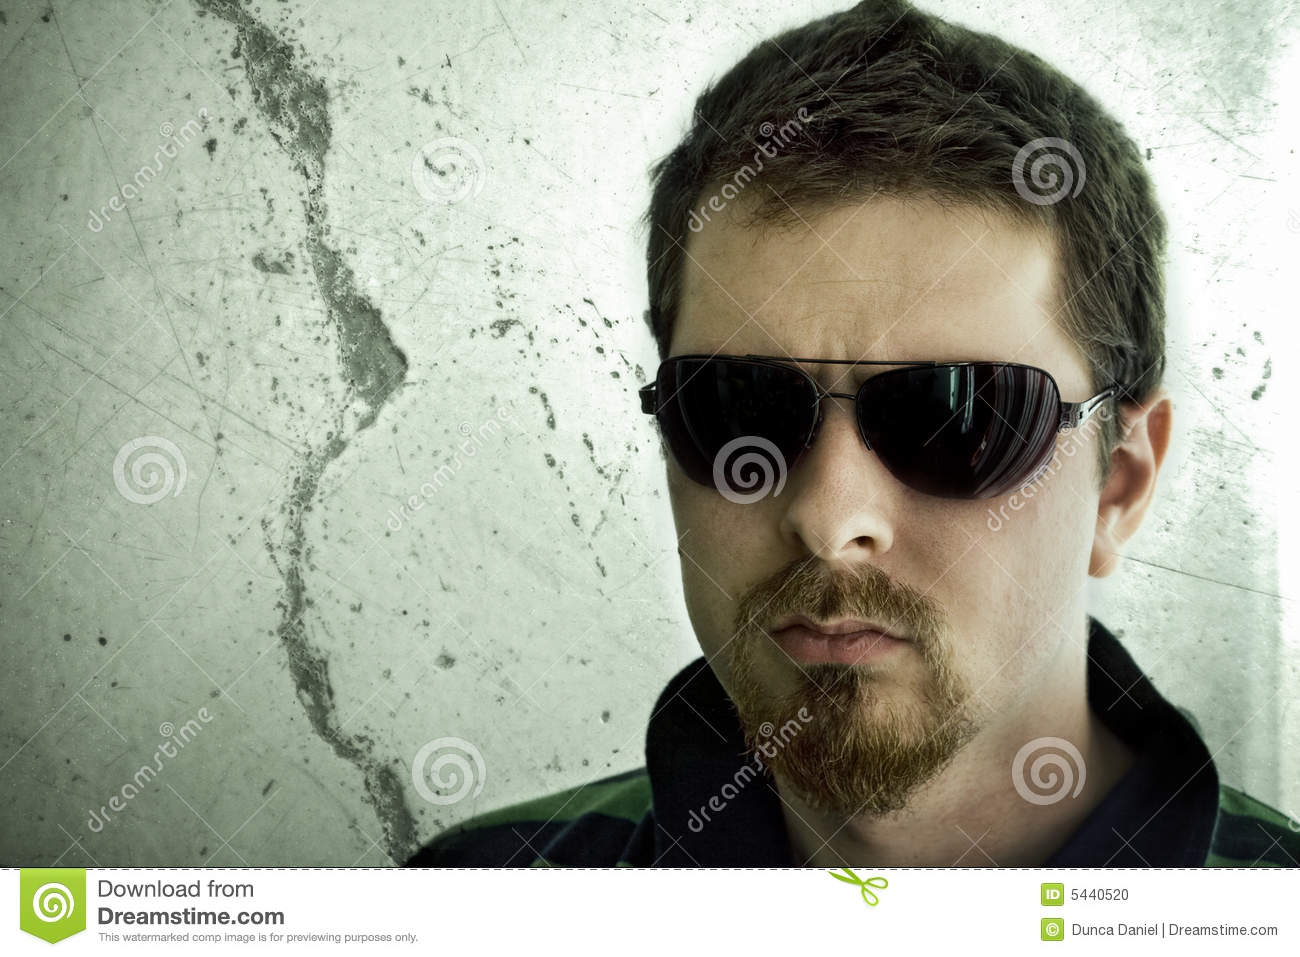 Tough man in front of grunge wall